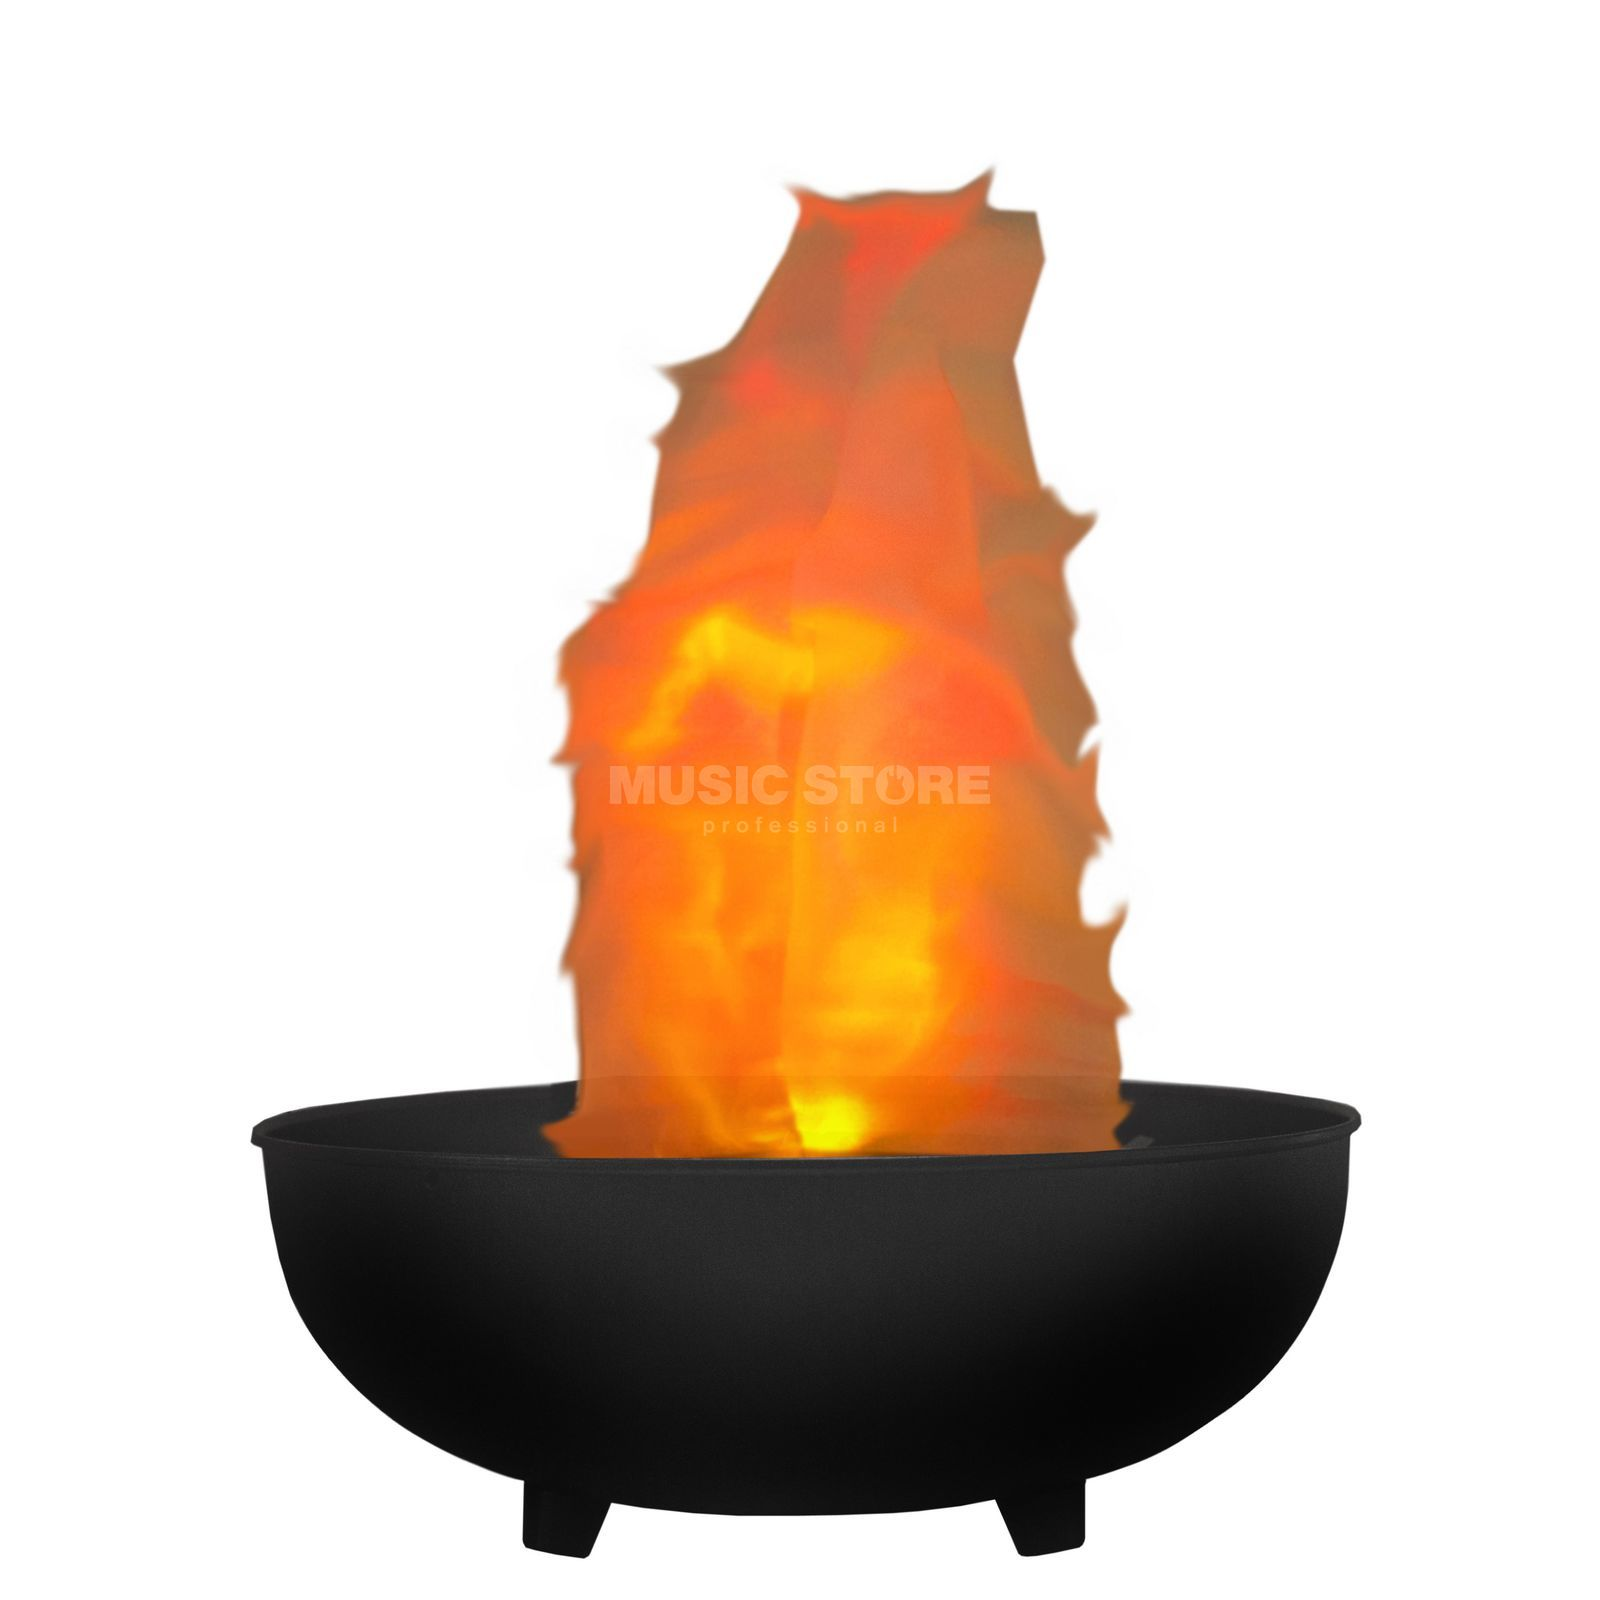 JB Systems LED Virtual Flame Feuereffekt, 35cm Product Image